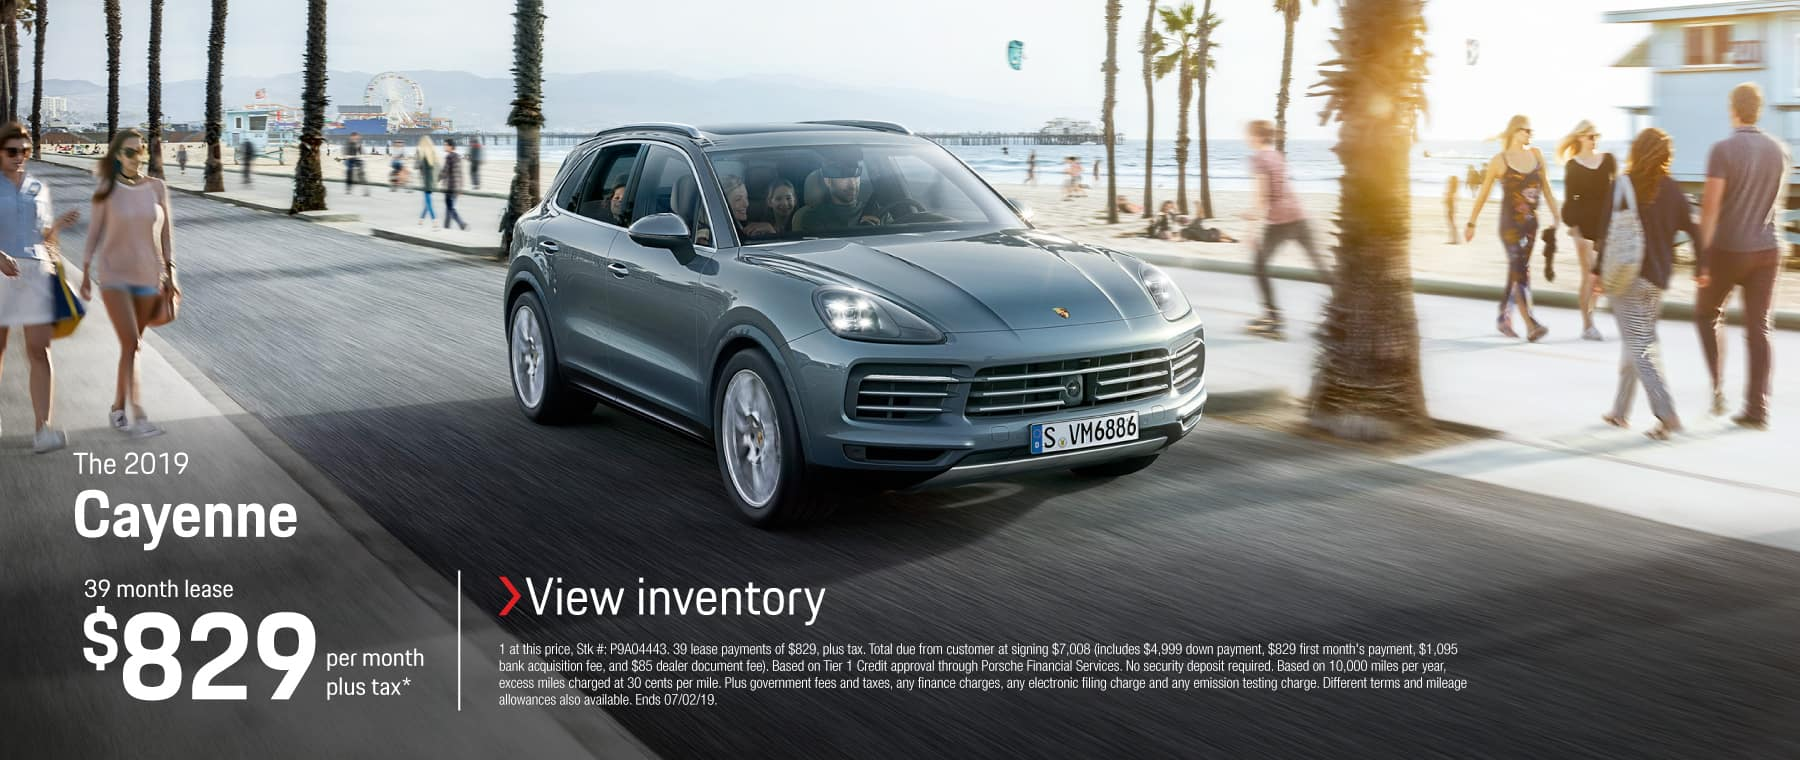 2019 Cayenne 39 month lease $829 per month plus tax